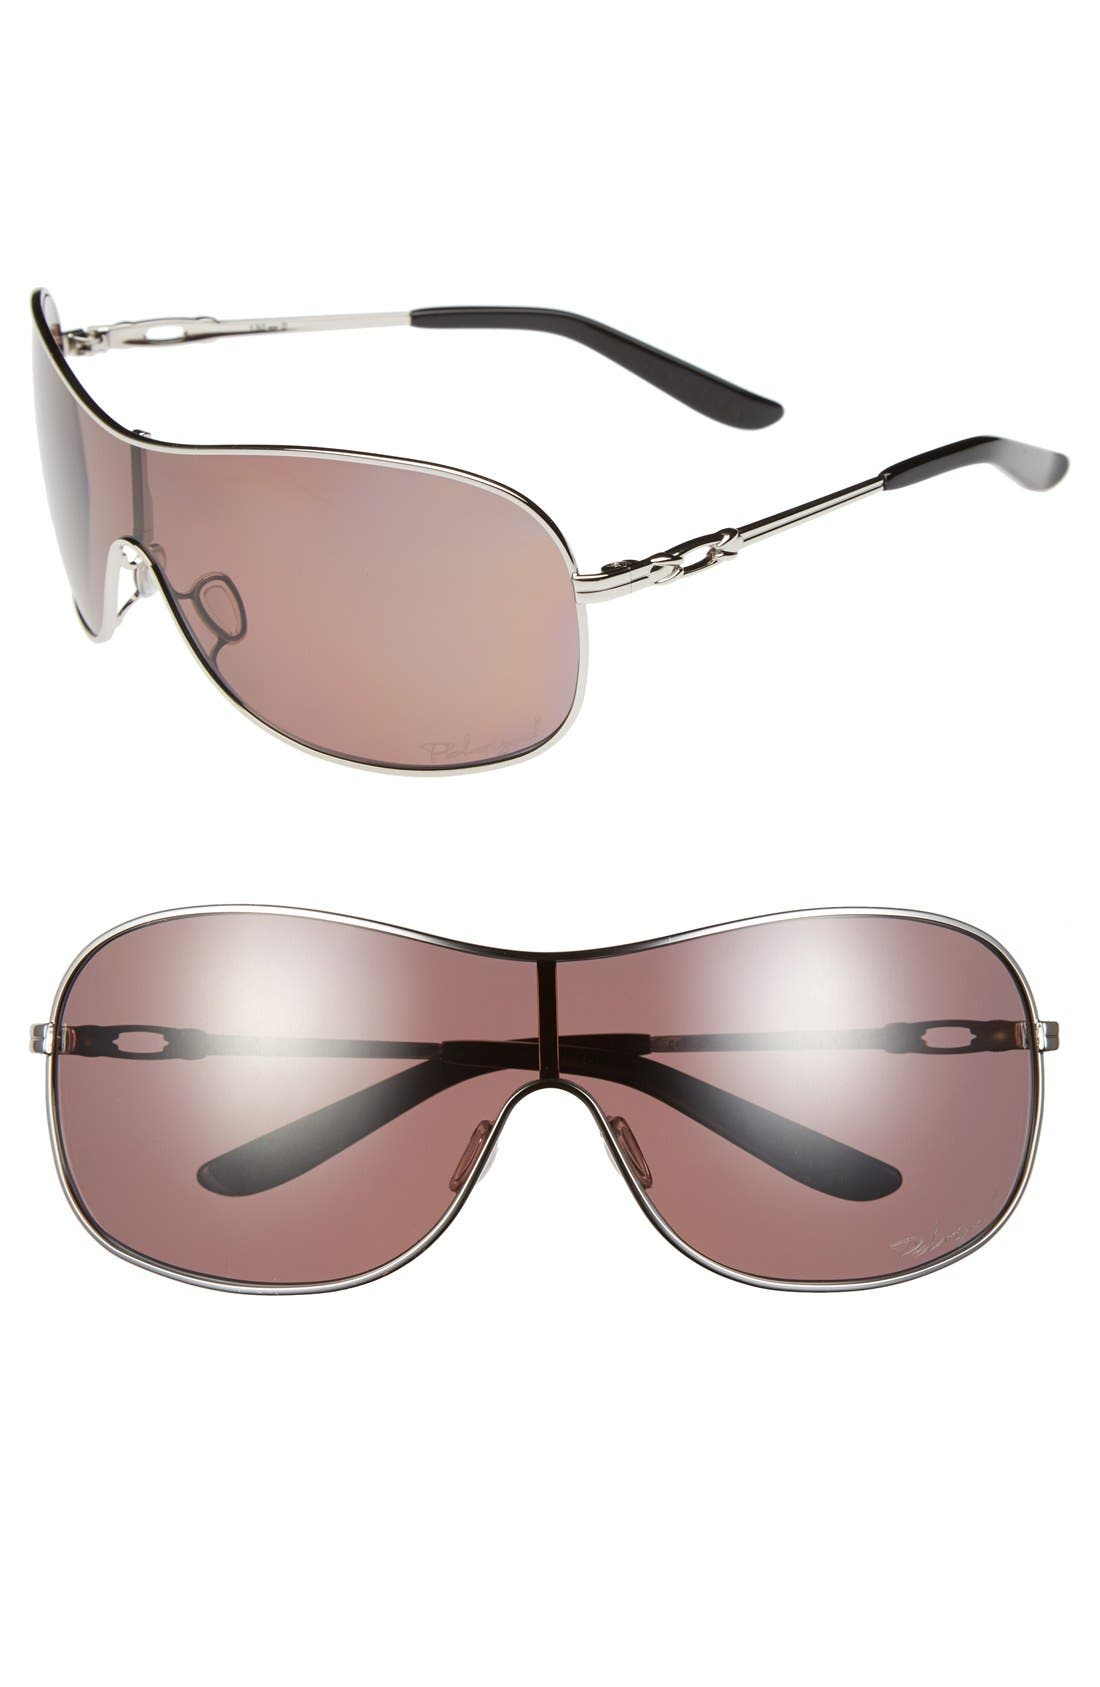 Main Image - Oakley 'Collected' Shield 130mm Sunglasses